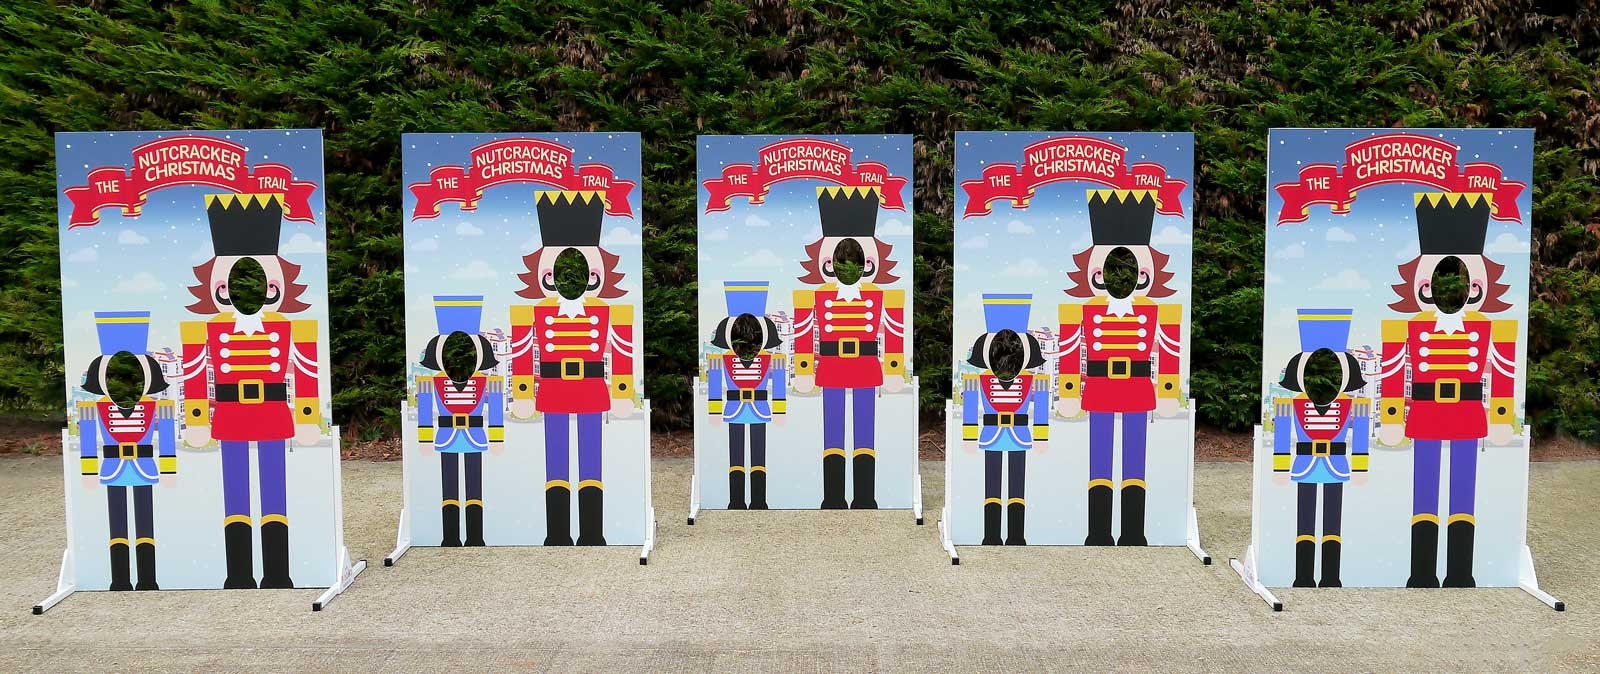 Christas nutcracker photo boards